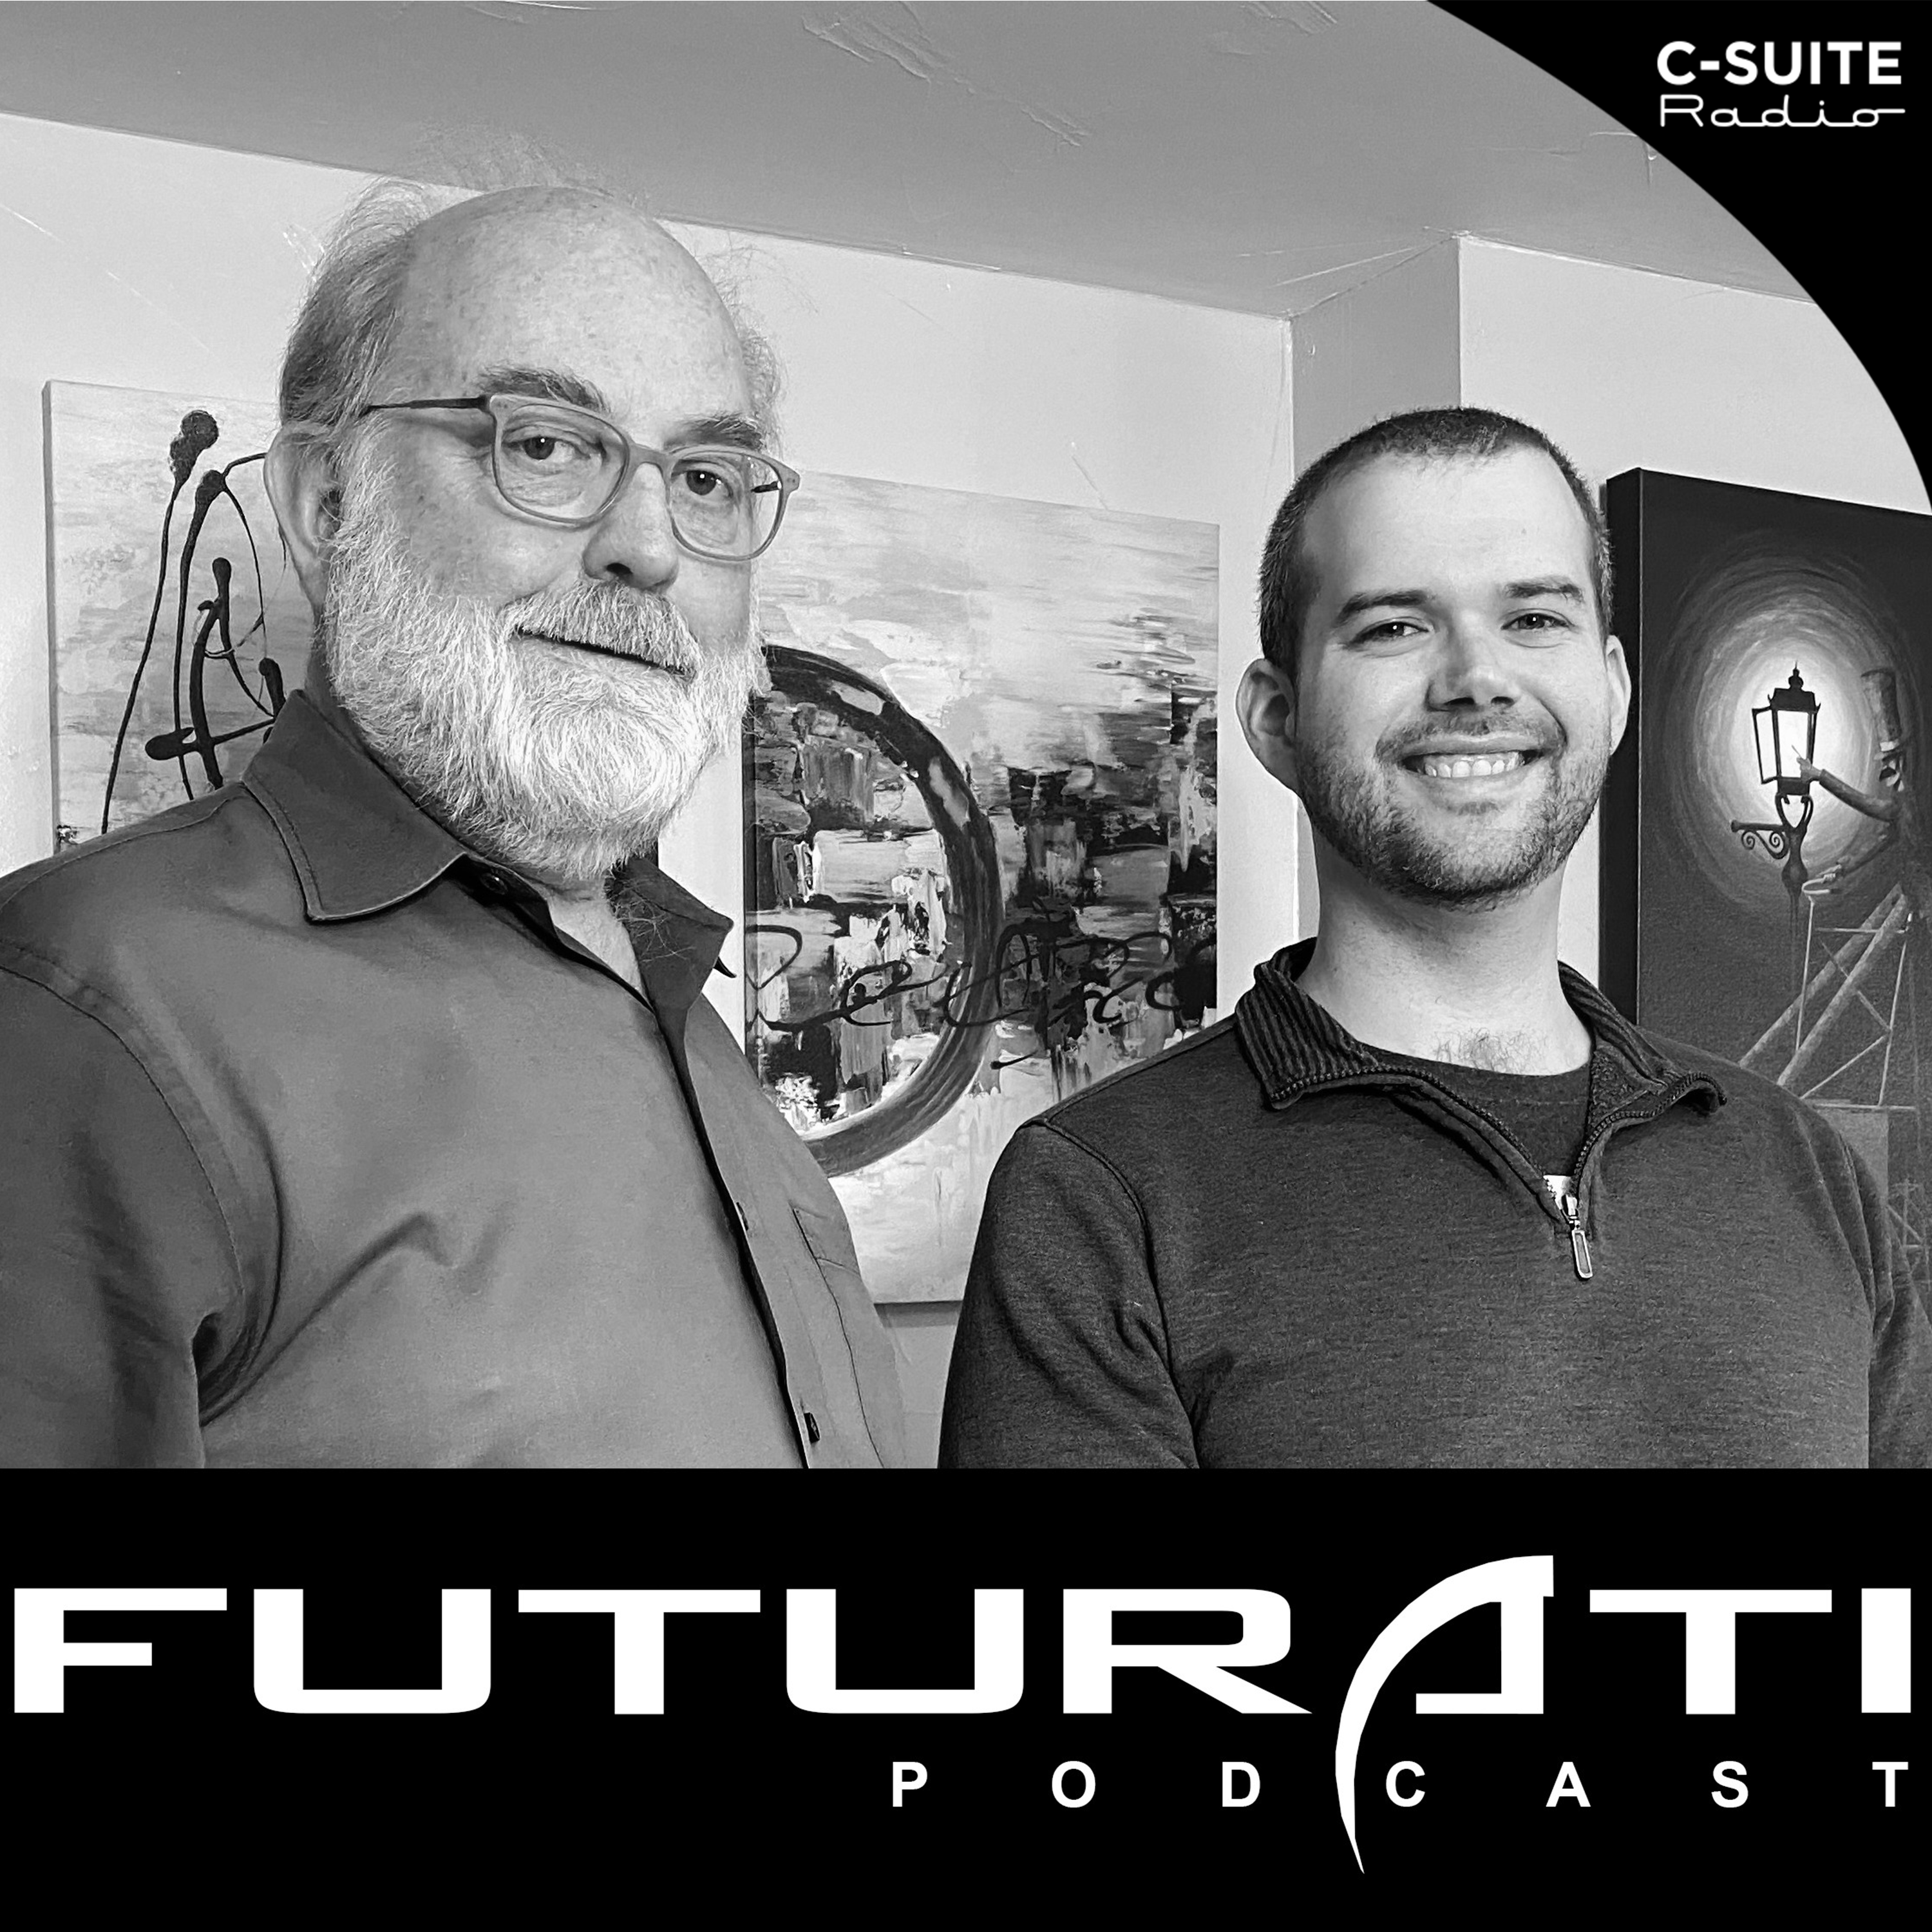 FUTURATI PODCAST